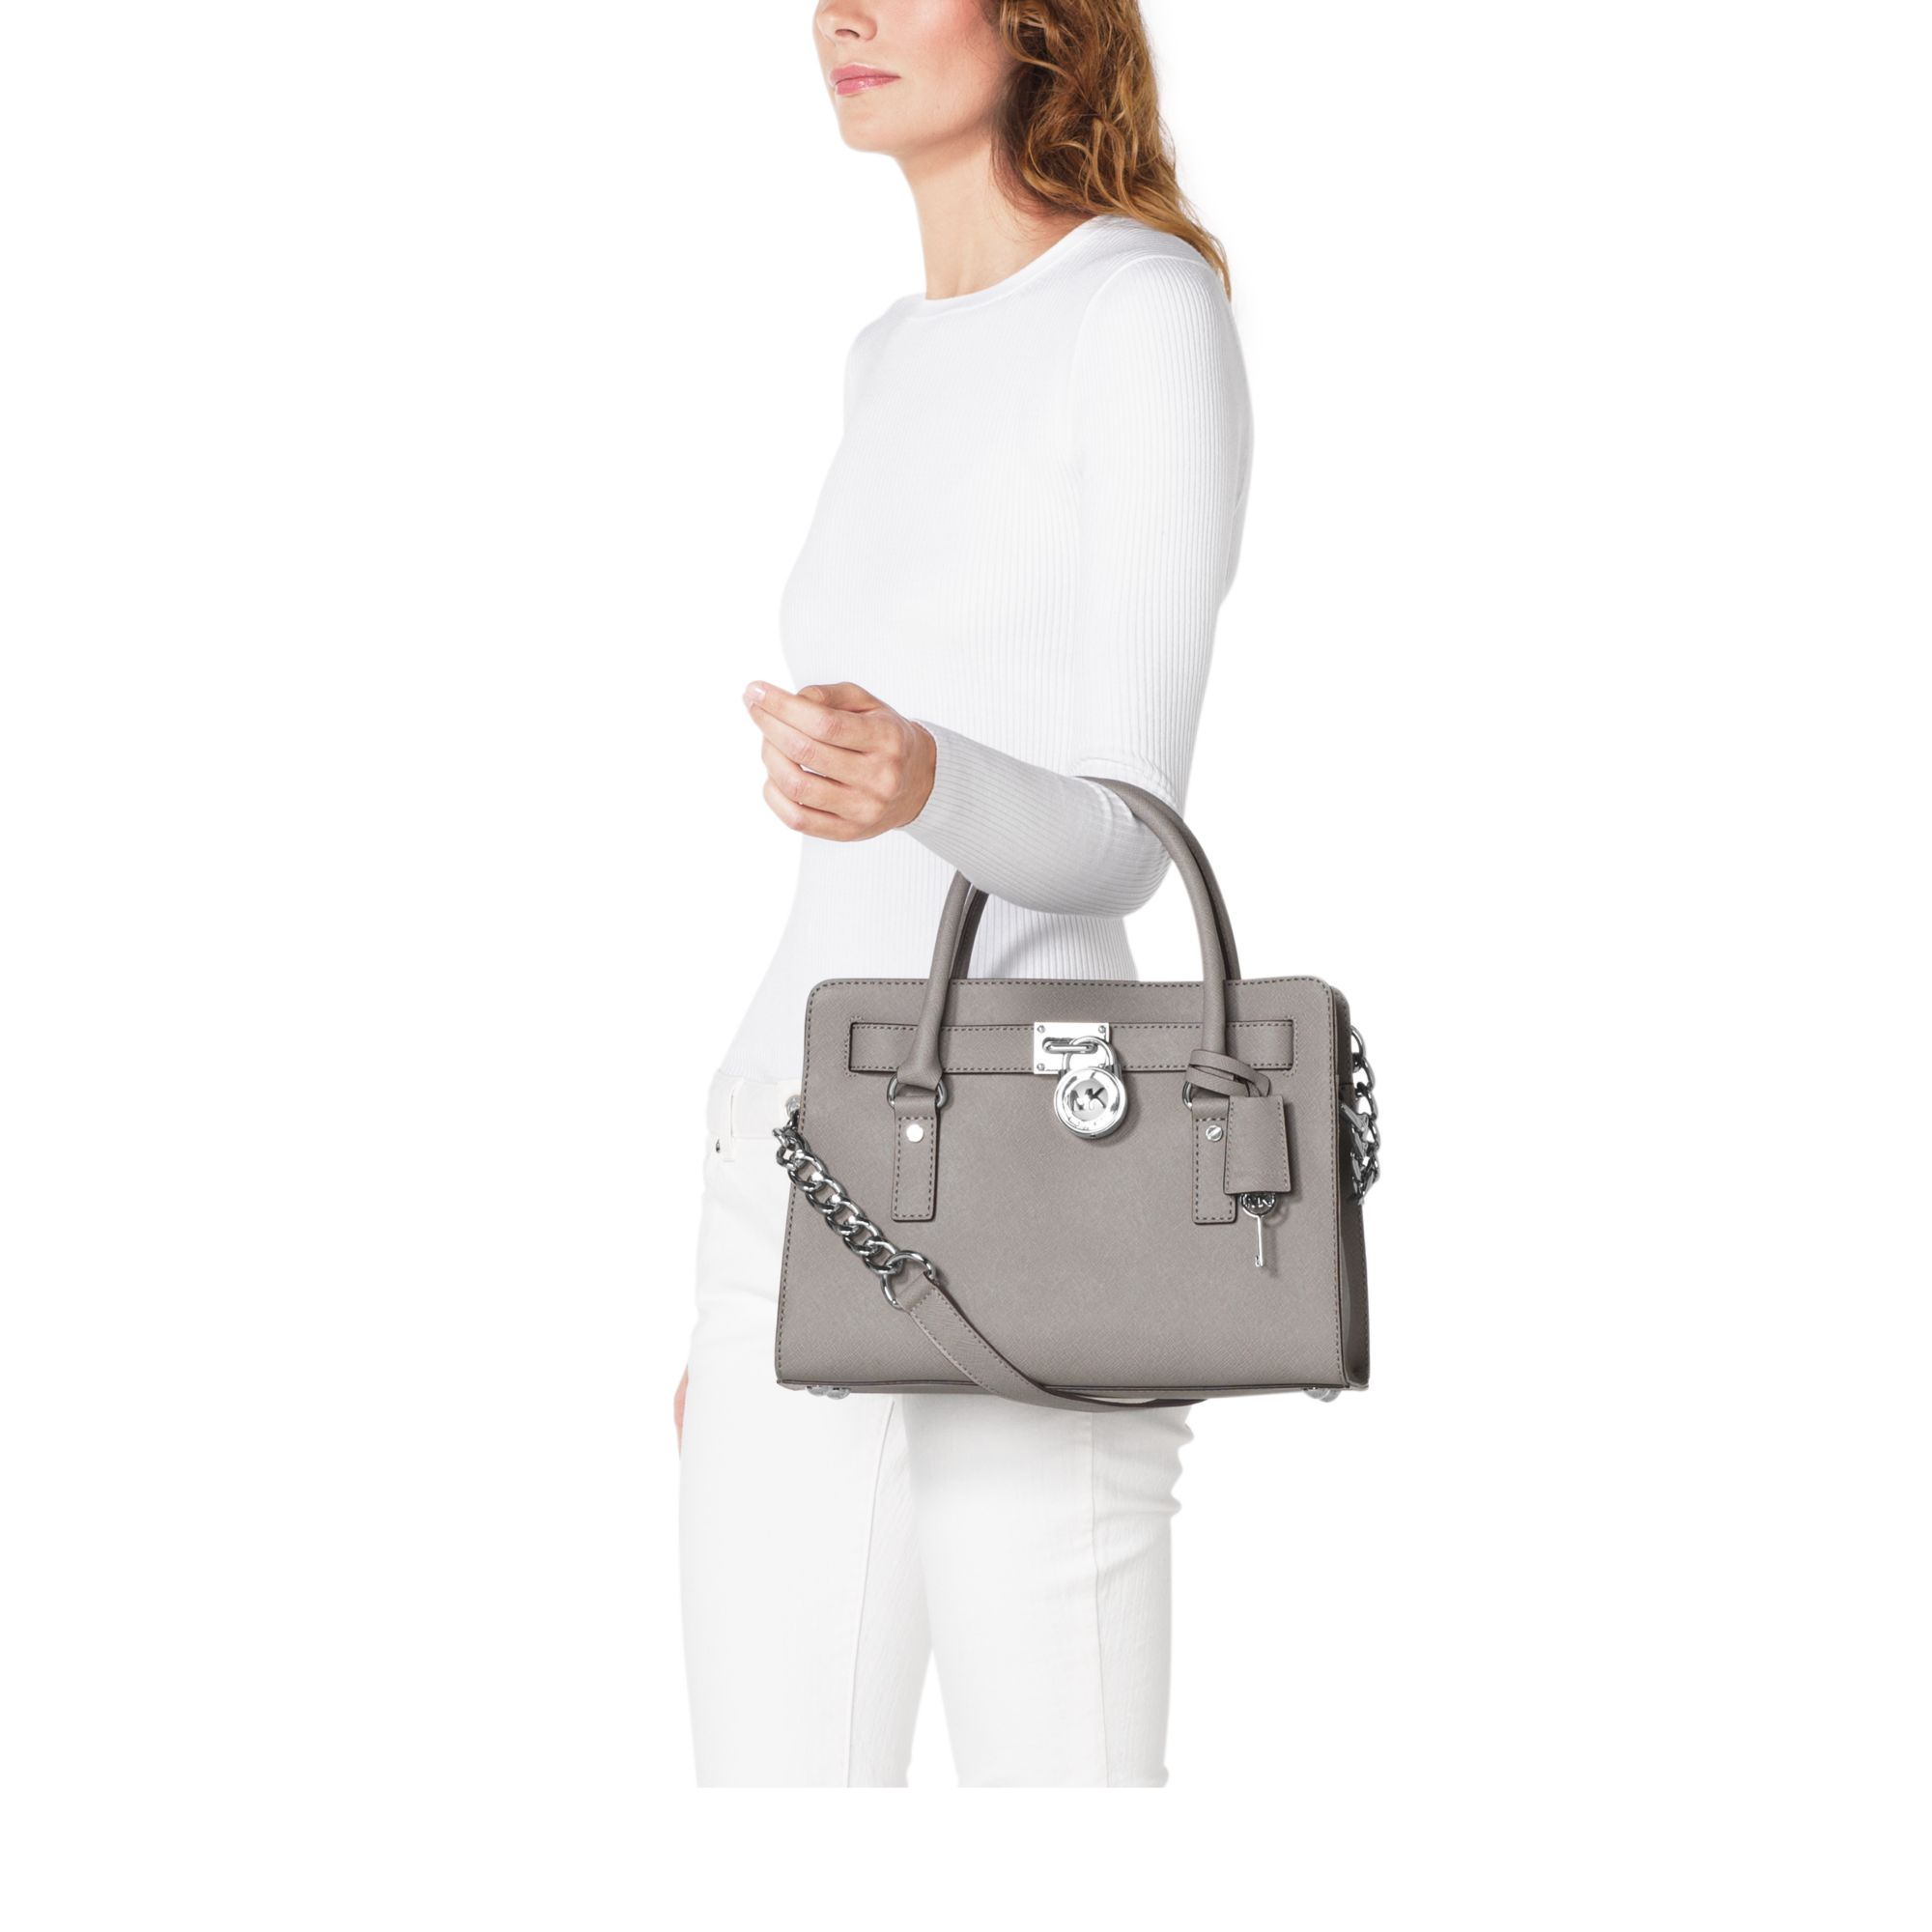 90894f181ee3 Michael Kors Hamilton Saffiano Leather Satchel in Gray - Lyst